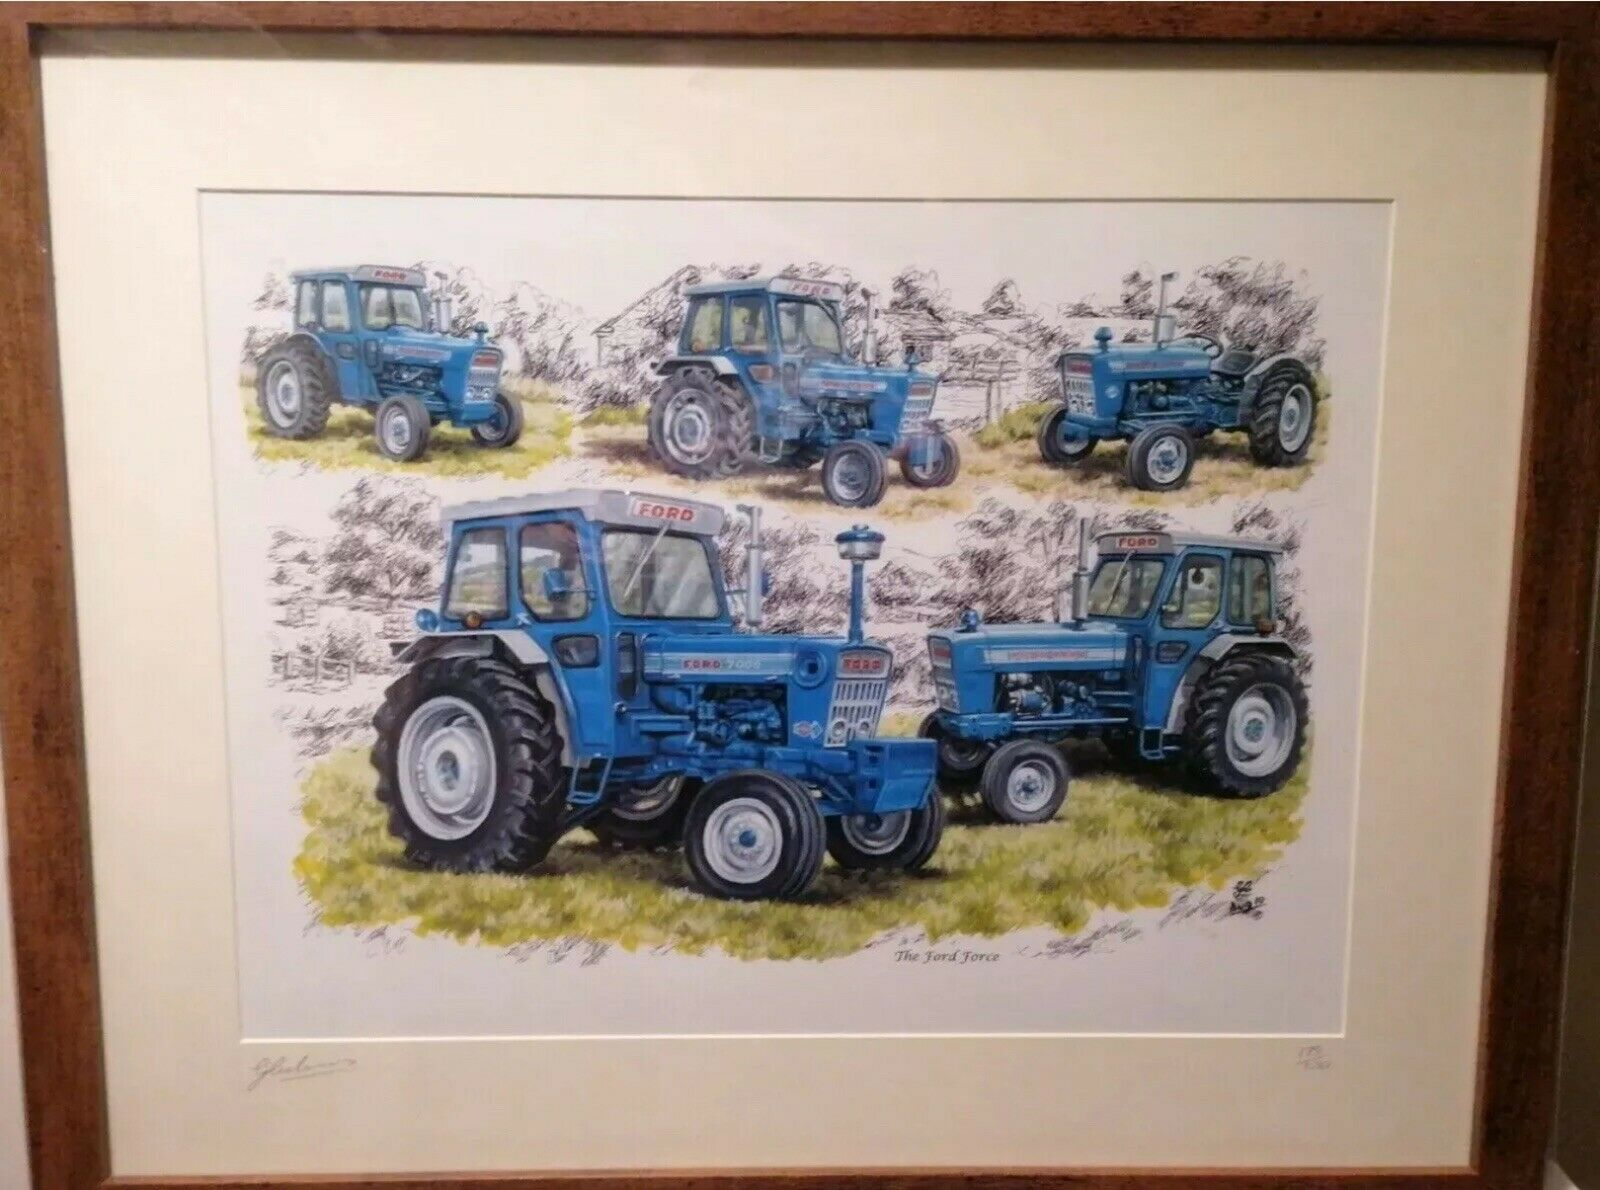 3 Picture Prints Deal A4 Size David Brown Marshall Leyland Ford Force Tractors